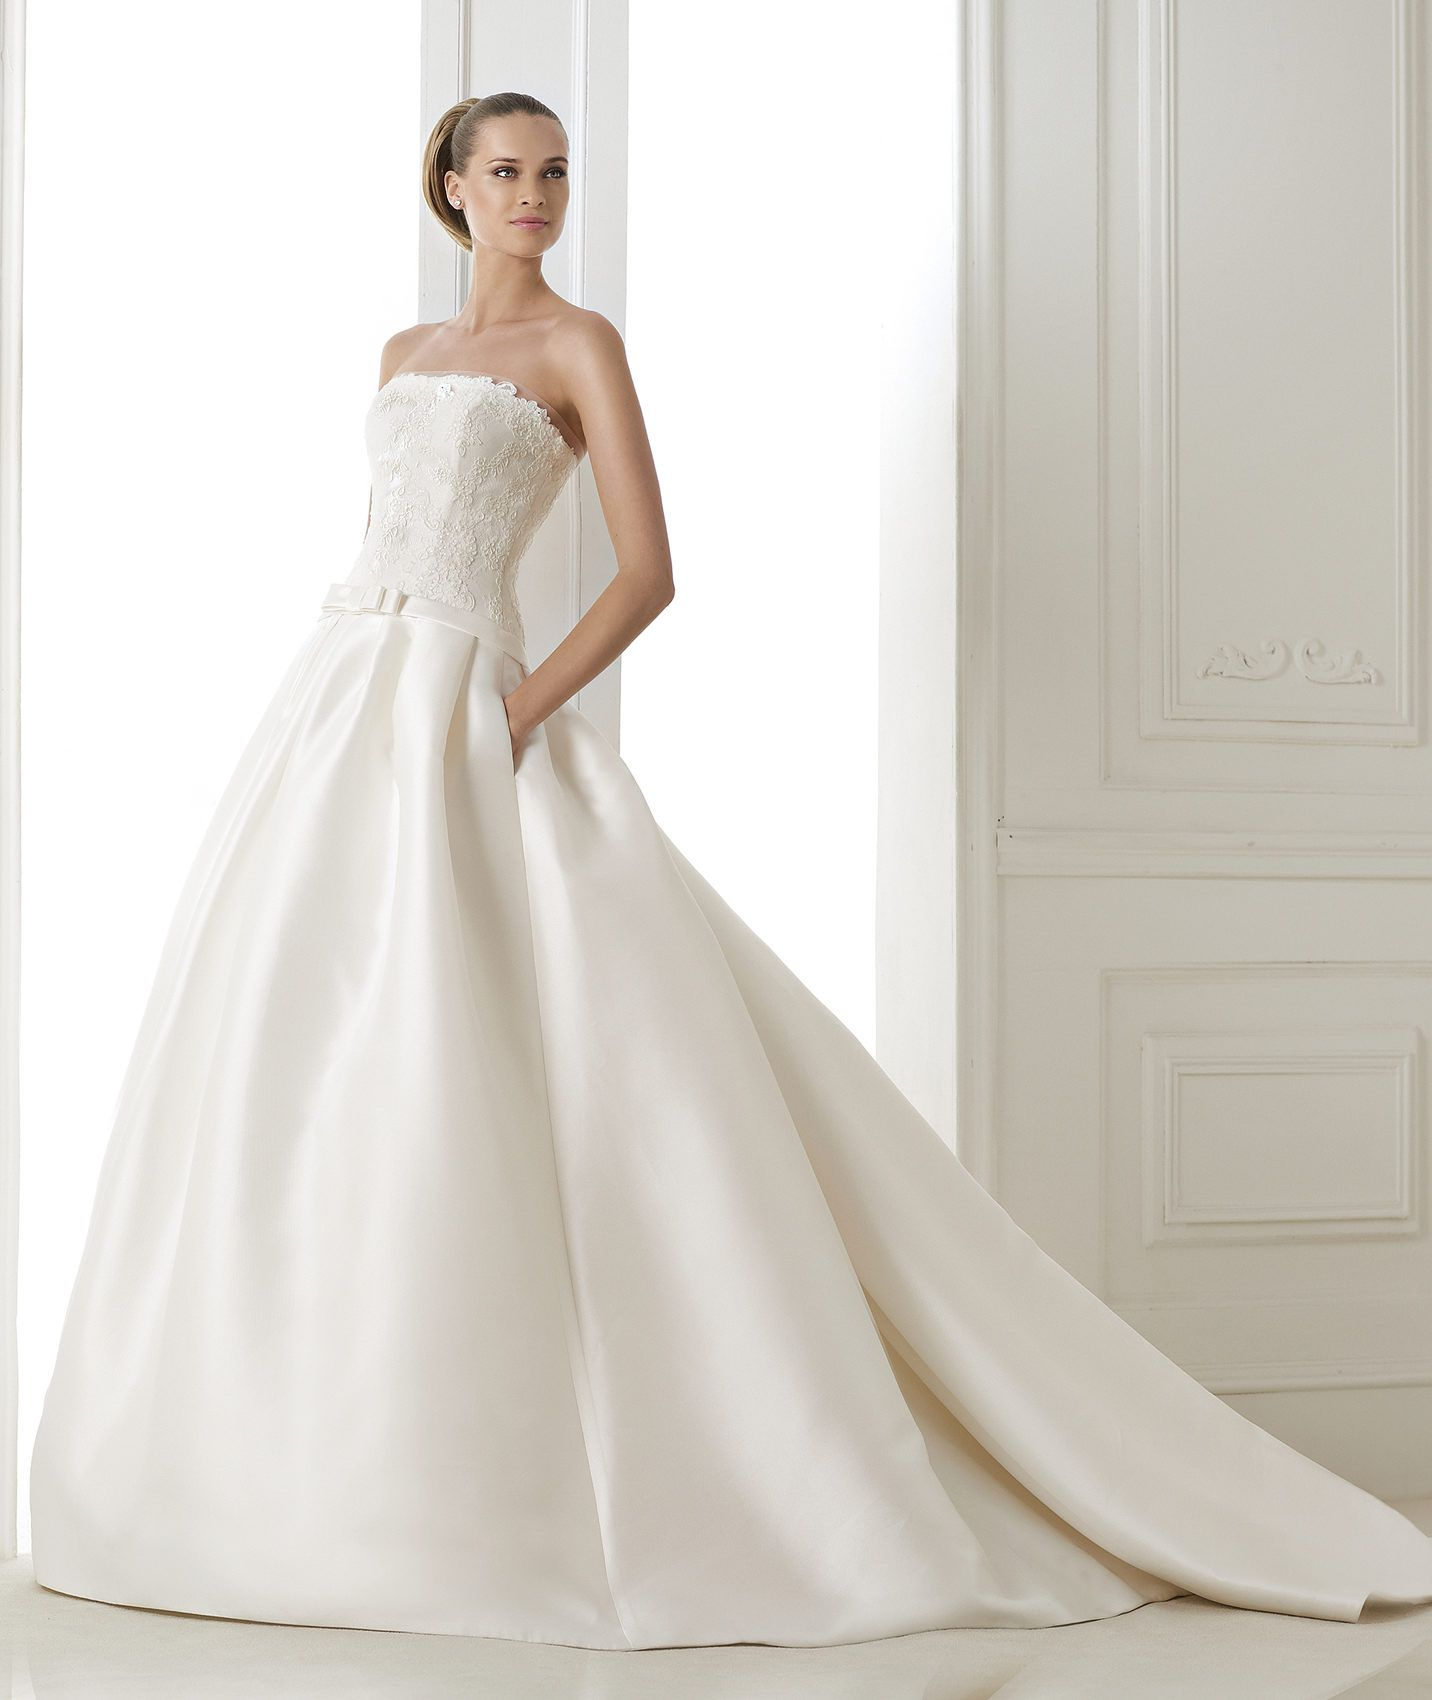 BARONDA - Princess wedding dress. Collection 2015 COSTURA | Pronovias